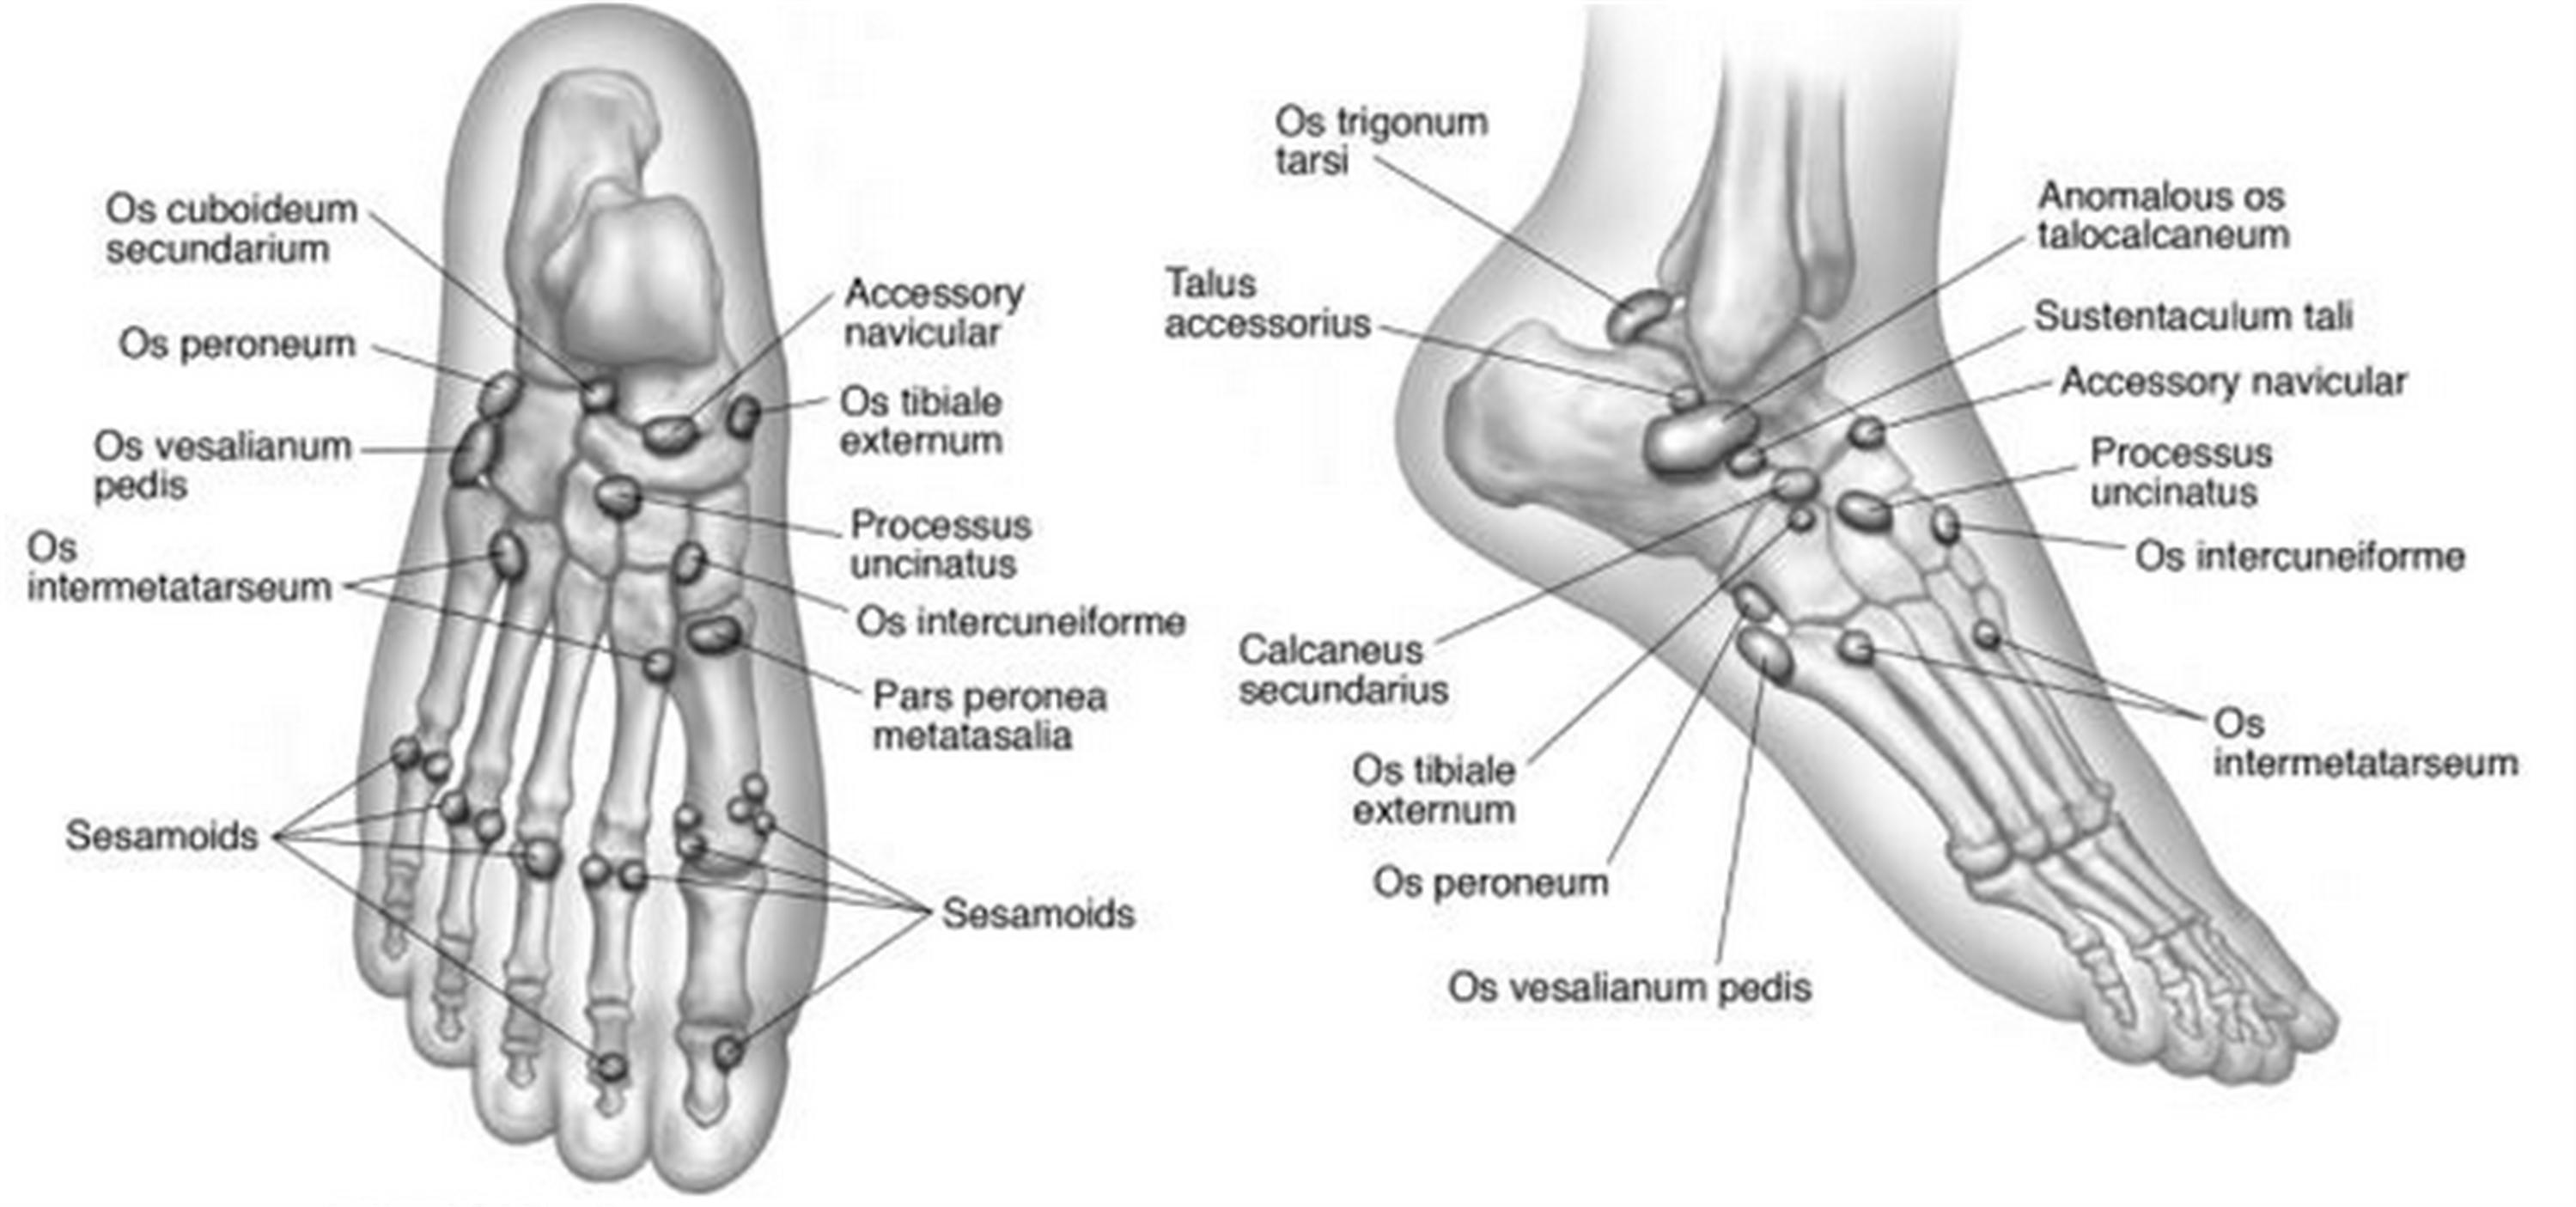 https://upload.orthobullets.com/topic/7049/images/diagram all ossicles of foot.jpg